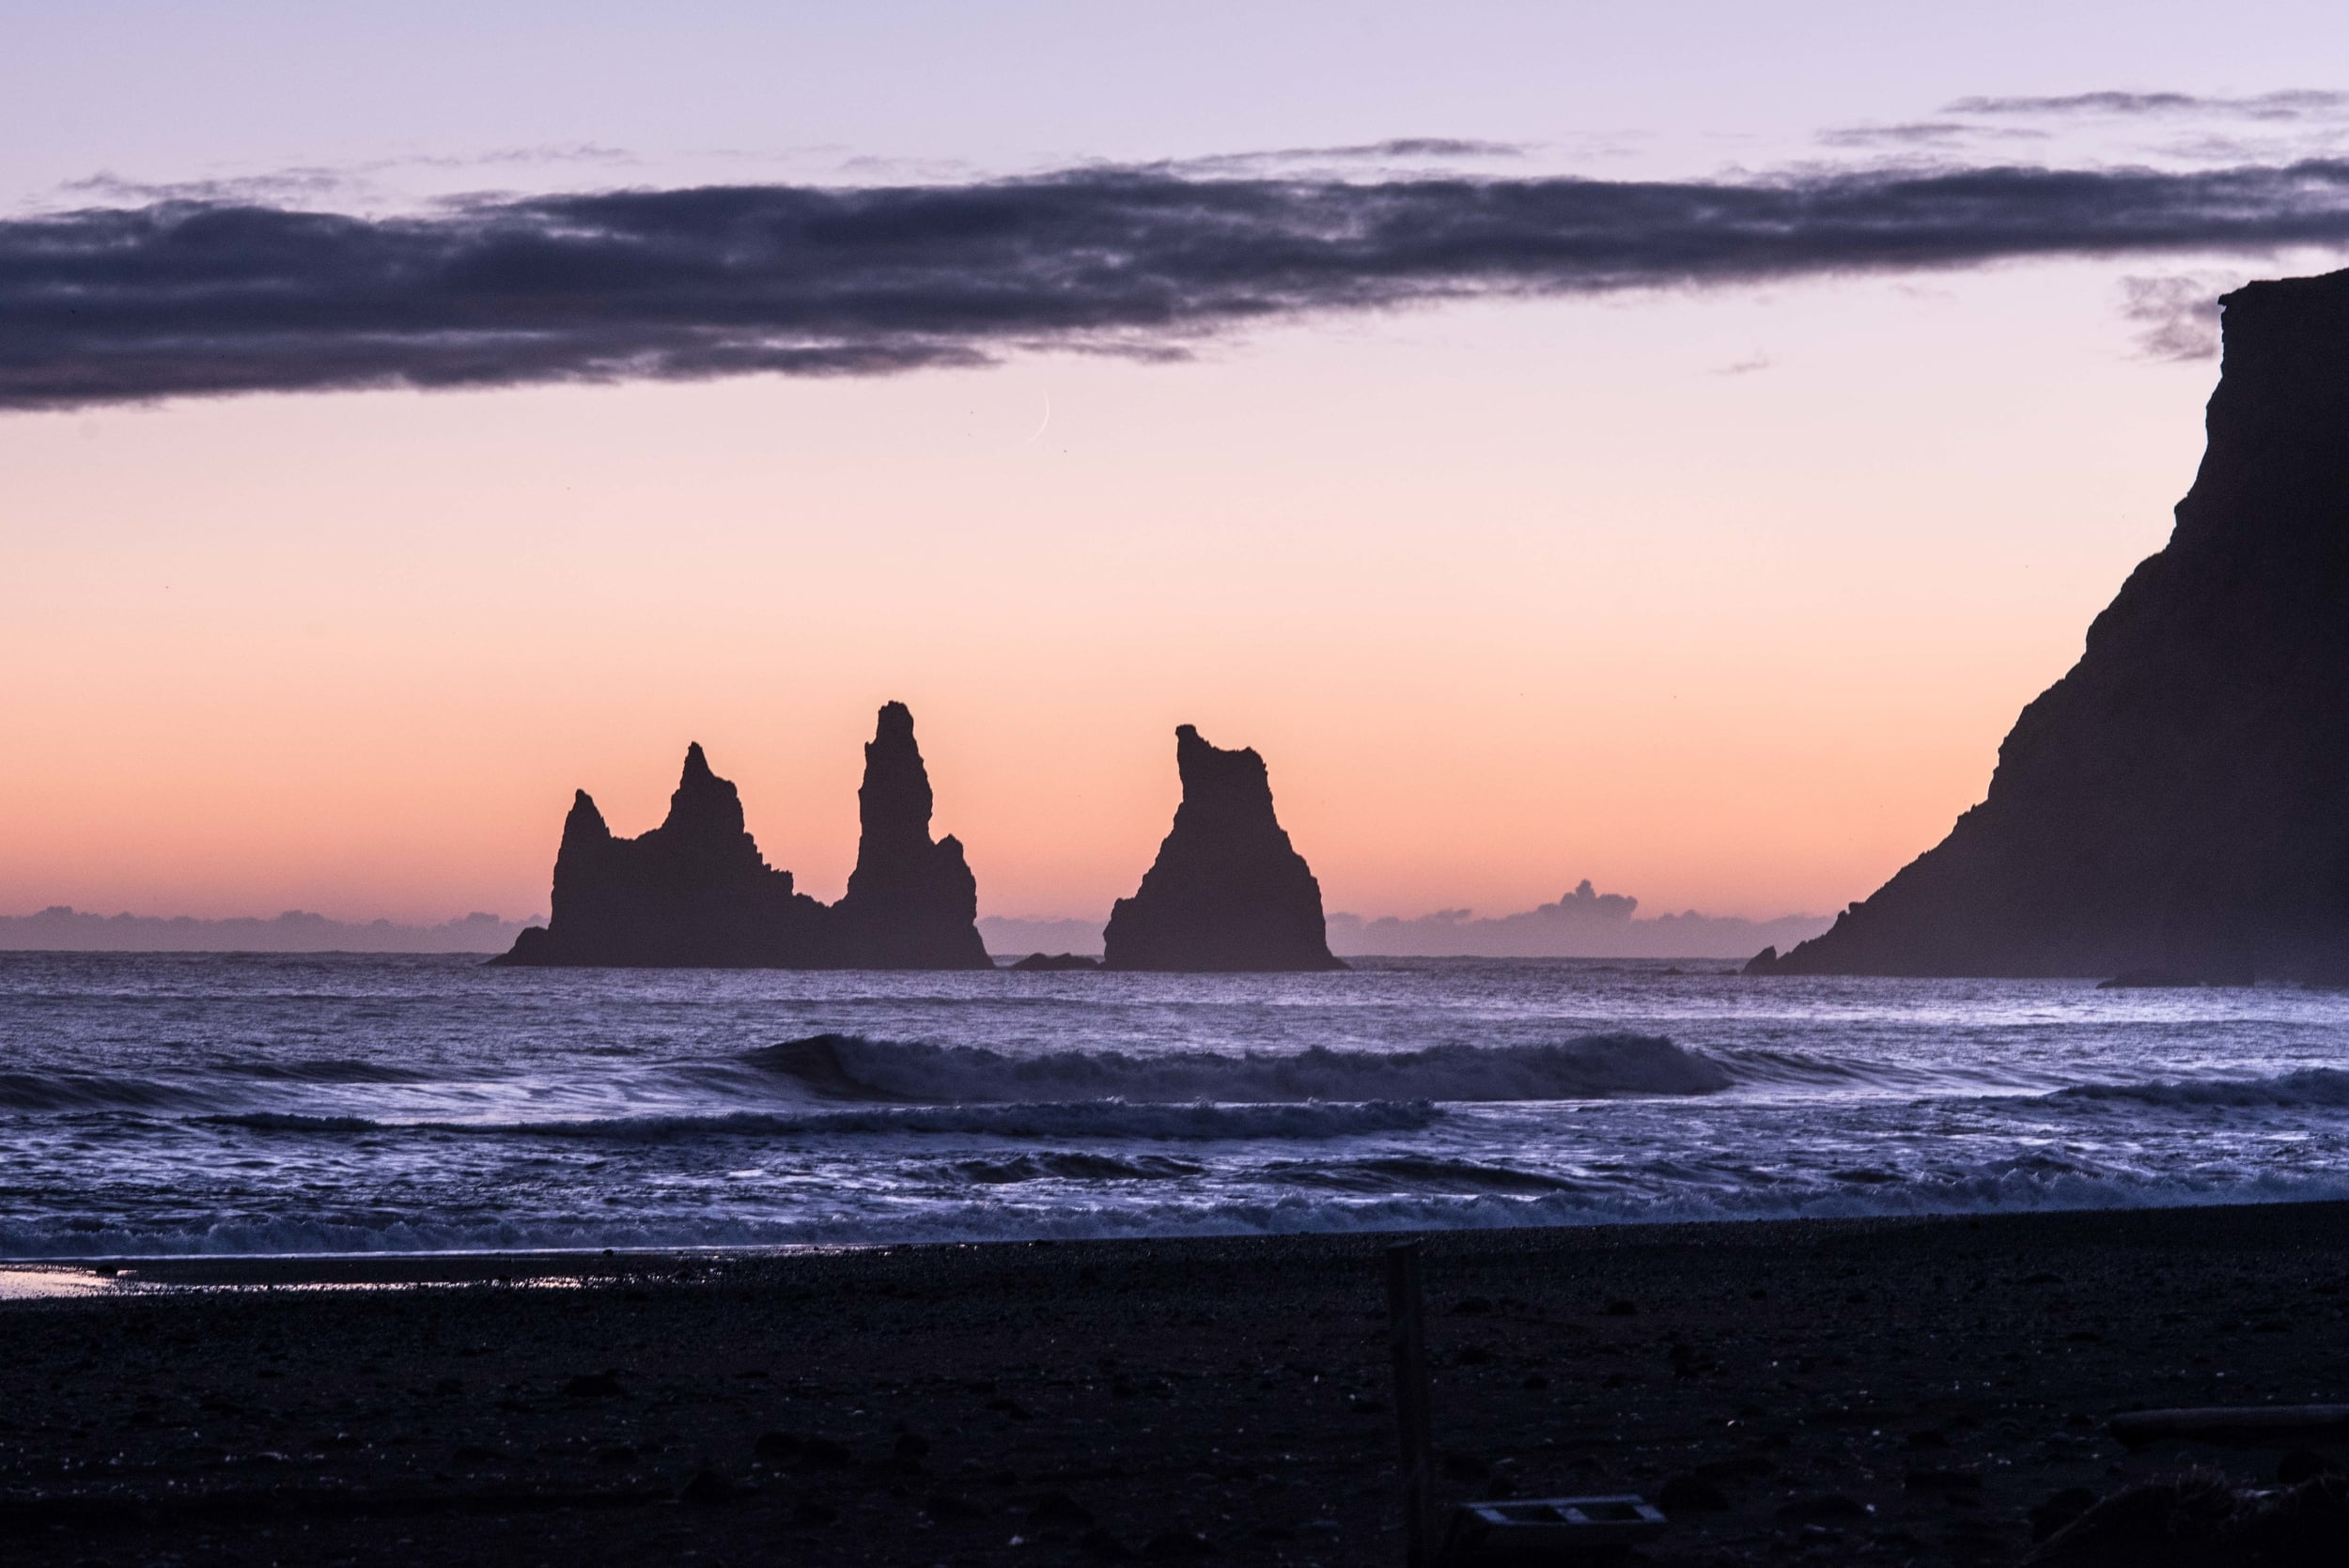 Vik Sea Stacks, a telephoto treatment